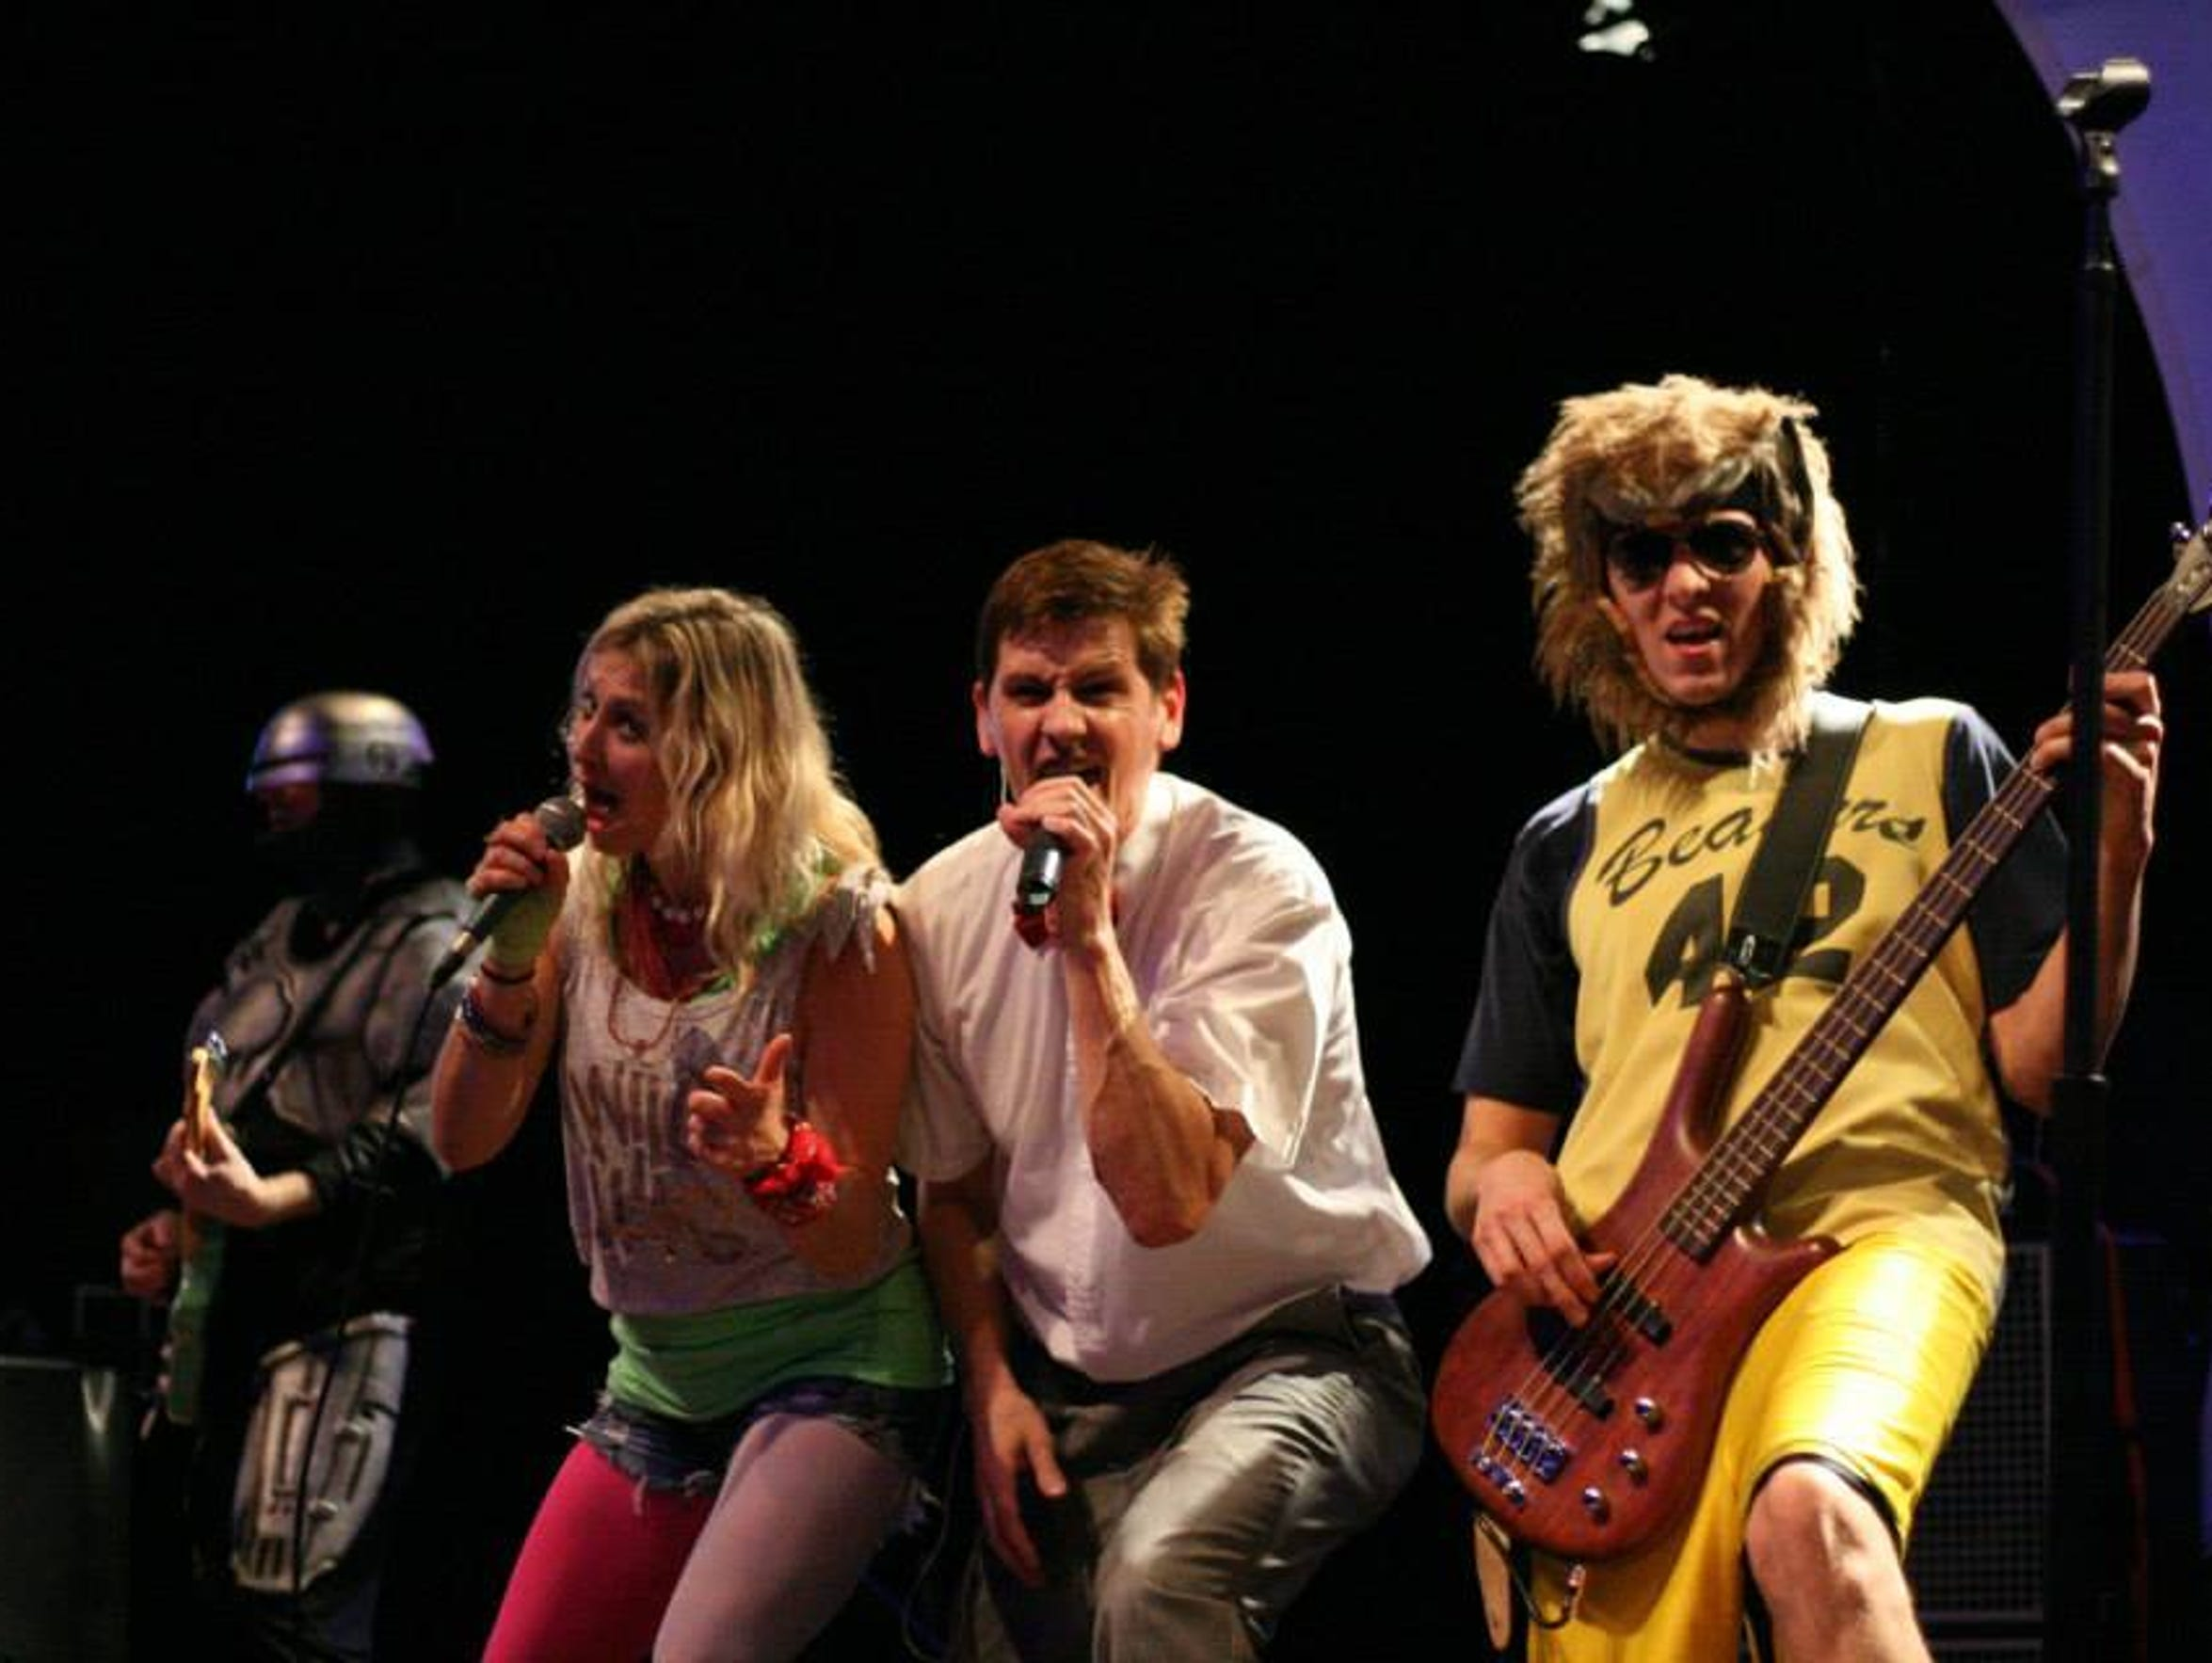 Popular 1980s cover band Rubik's Groove will perform